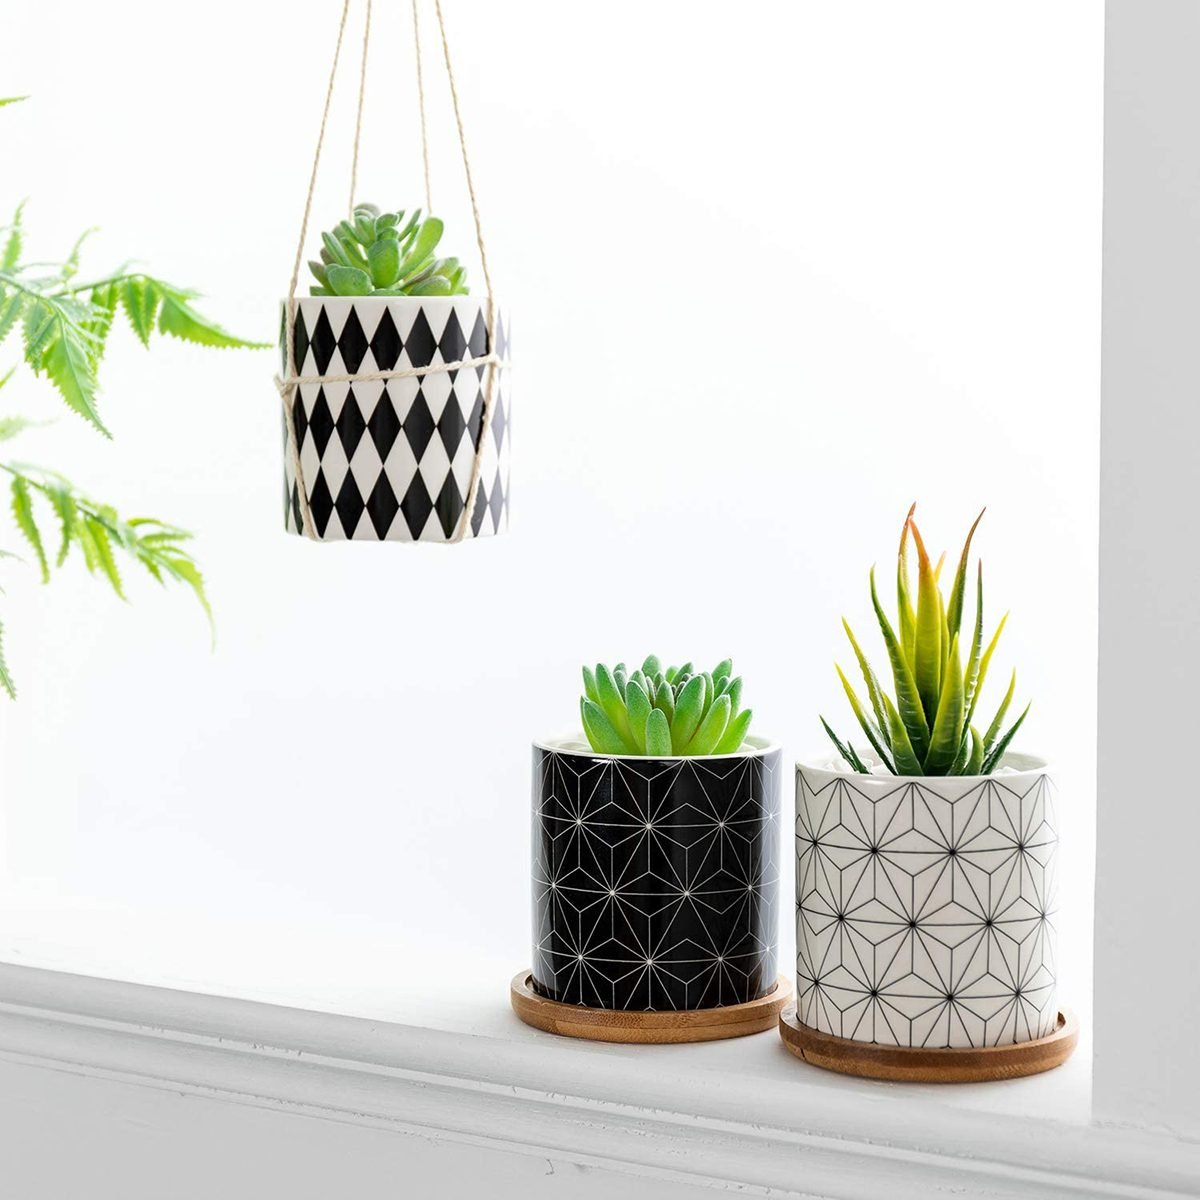 Dsben 3.5 Inch Succulent Plant Pots, Small Modern Pattern Flower Ceramic Planter Indoor with Bamboo Tray for Cactus, Herbs, Home, Set of 3